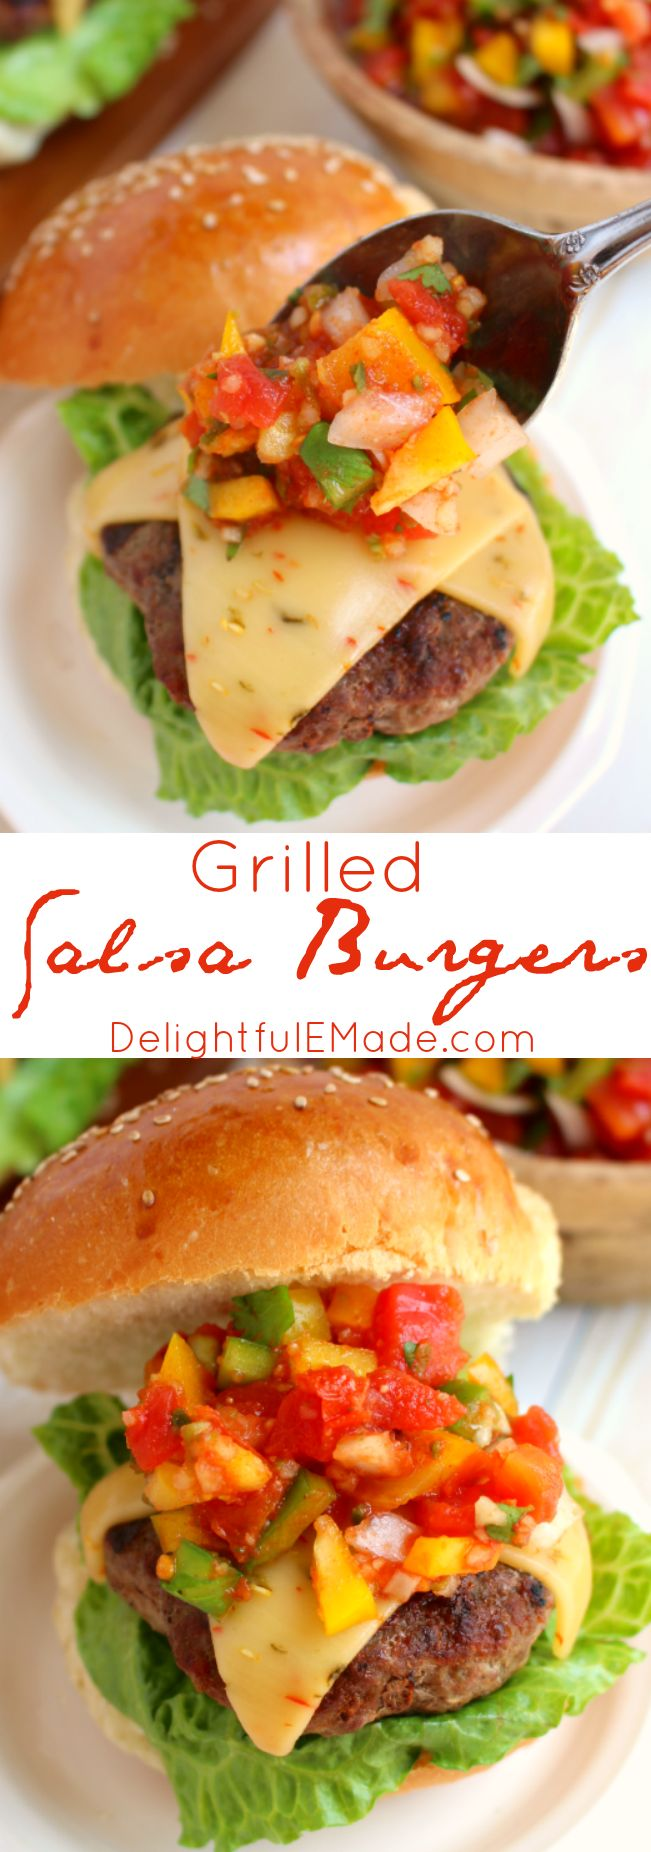 Fire up the grill, its time for some amazing burgers! Salsa made with delicious tomatoes, peppers, onions and garlic, along with pepper jack cheese bring serious flavor and freshness to our favorite summertime staple! #HuntsFreshTwists #ad @huntschef